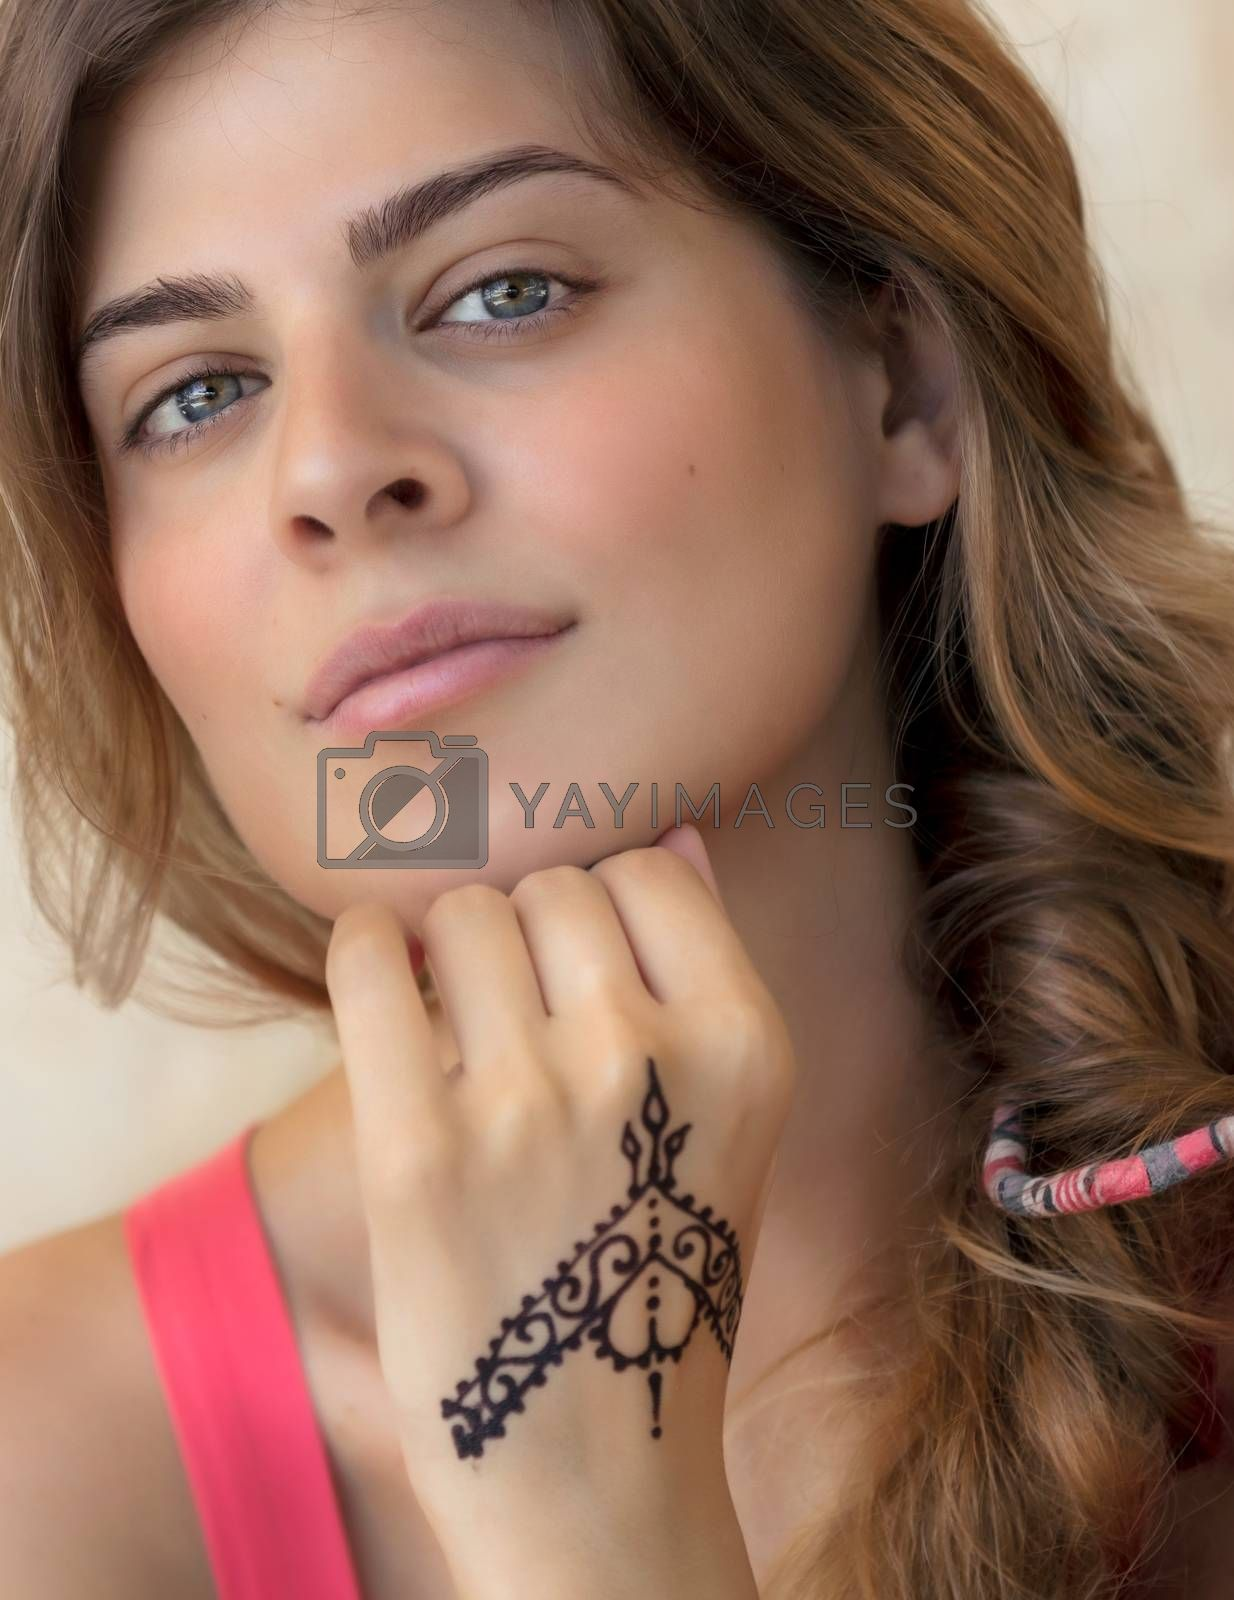 Closeup Genuine Portrait of an Attractive Woman Isolated on Beige Background with Beautiful Tattoo on the Hand. Stylish Body Art. Natural Beauty of Young Female.